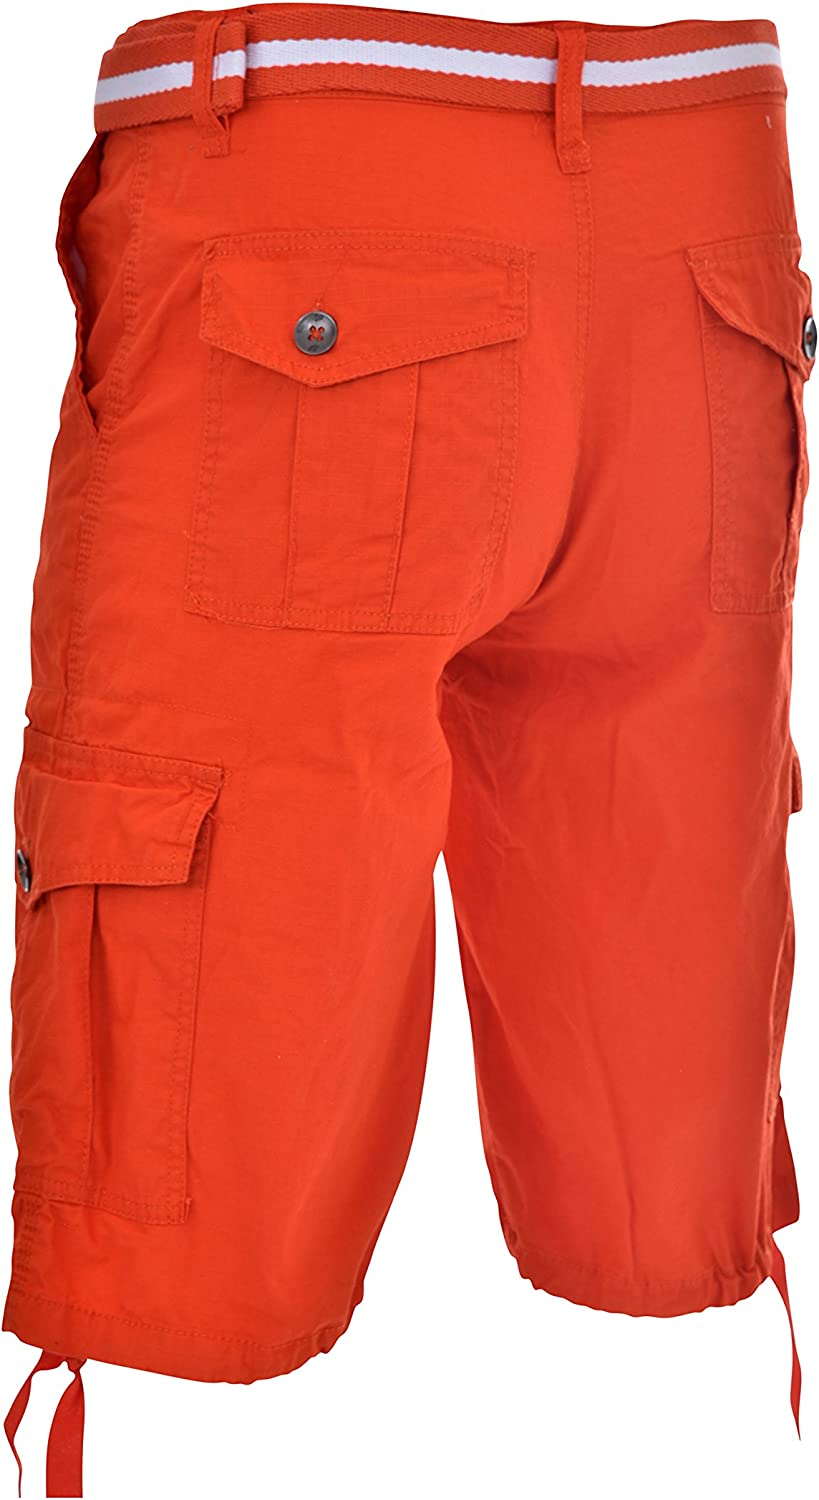 All-Season Belted Ripstop Basic Cargo Short